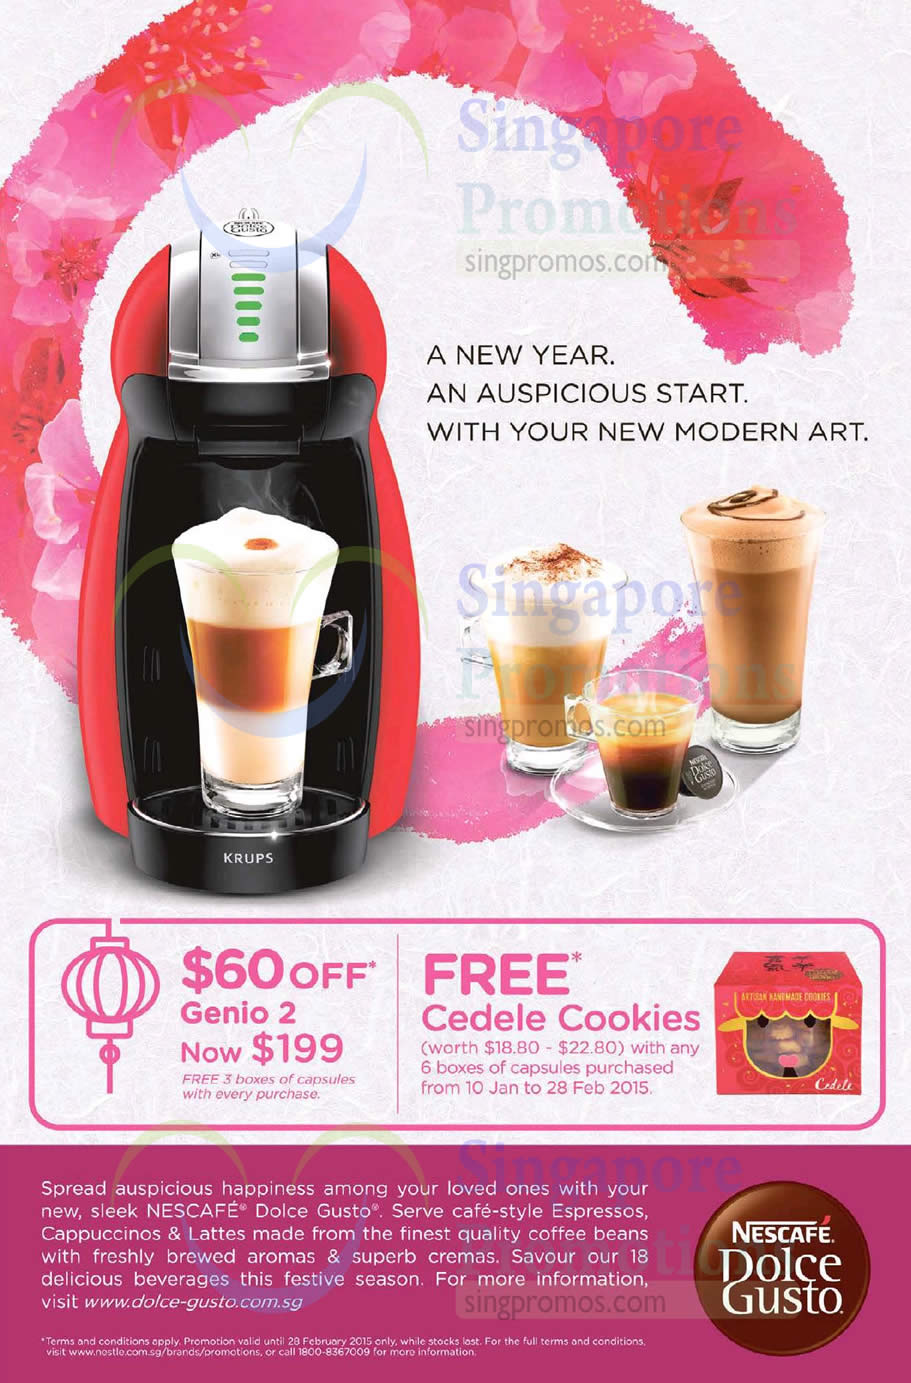 nescafe dolce gusto genio 2 promotion offer 18 jan 28. Black Bedroom Furniture Sets. Home Design Ideas